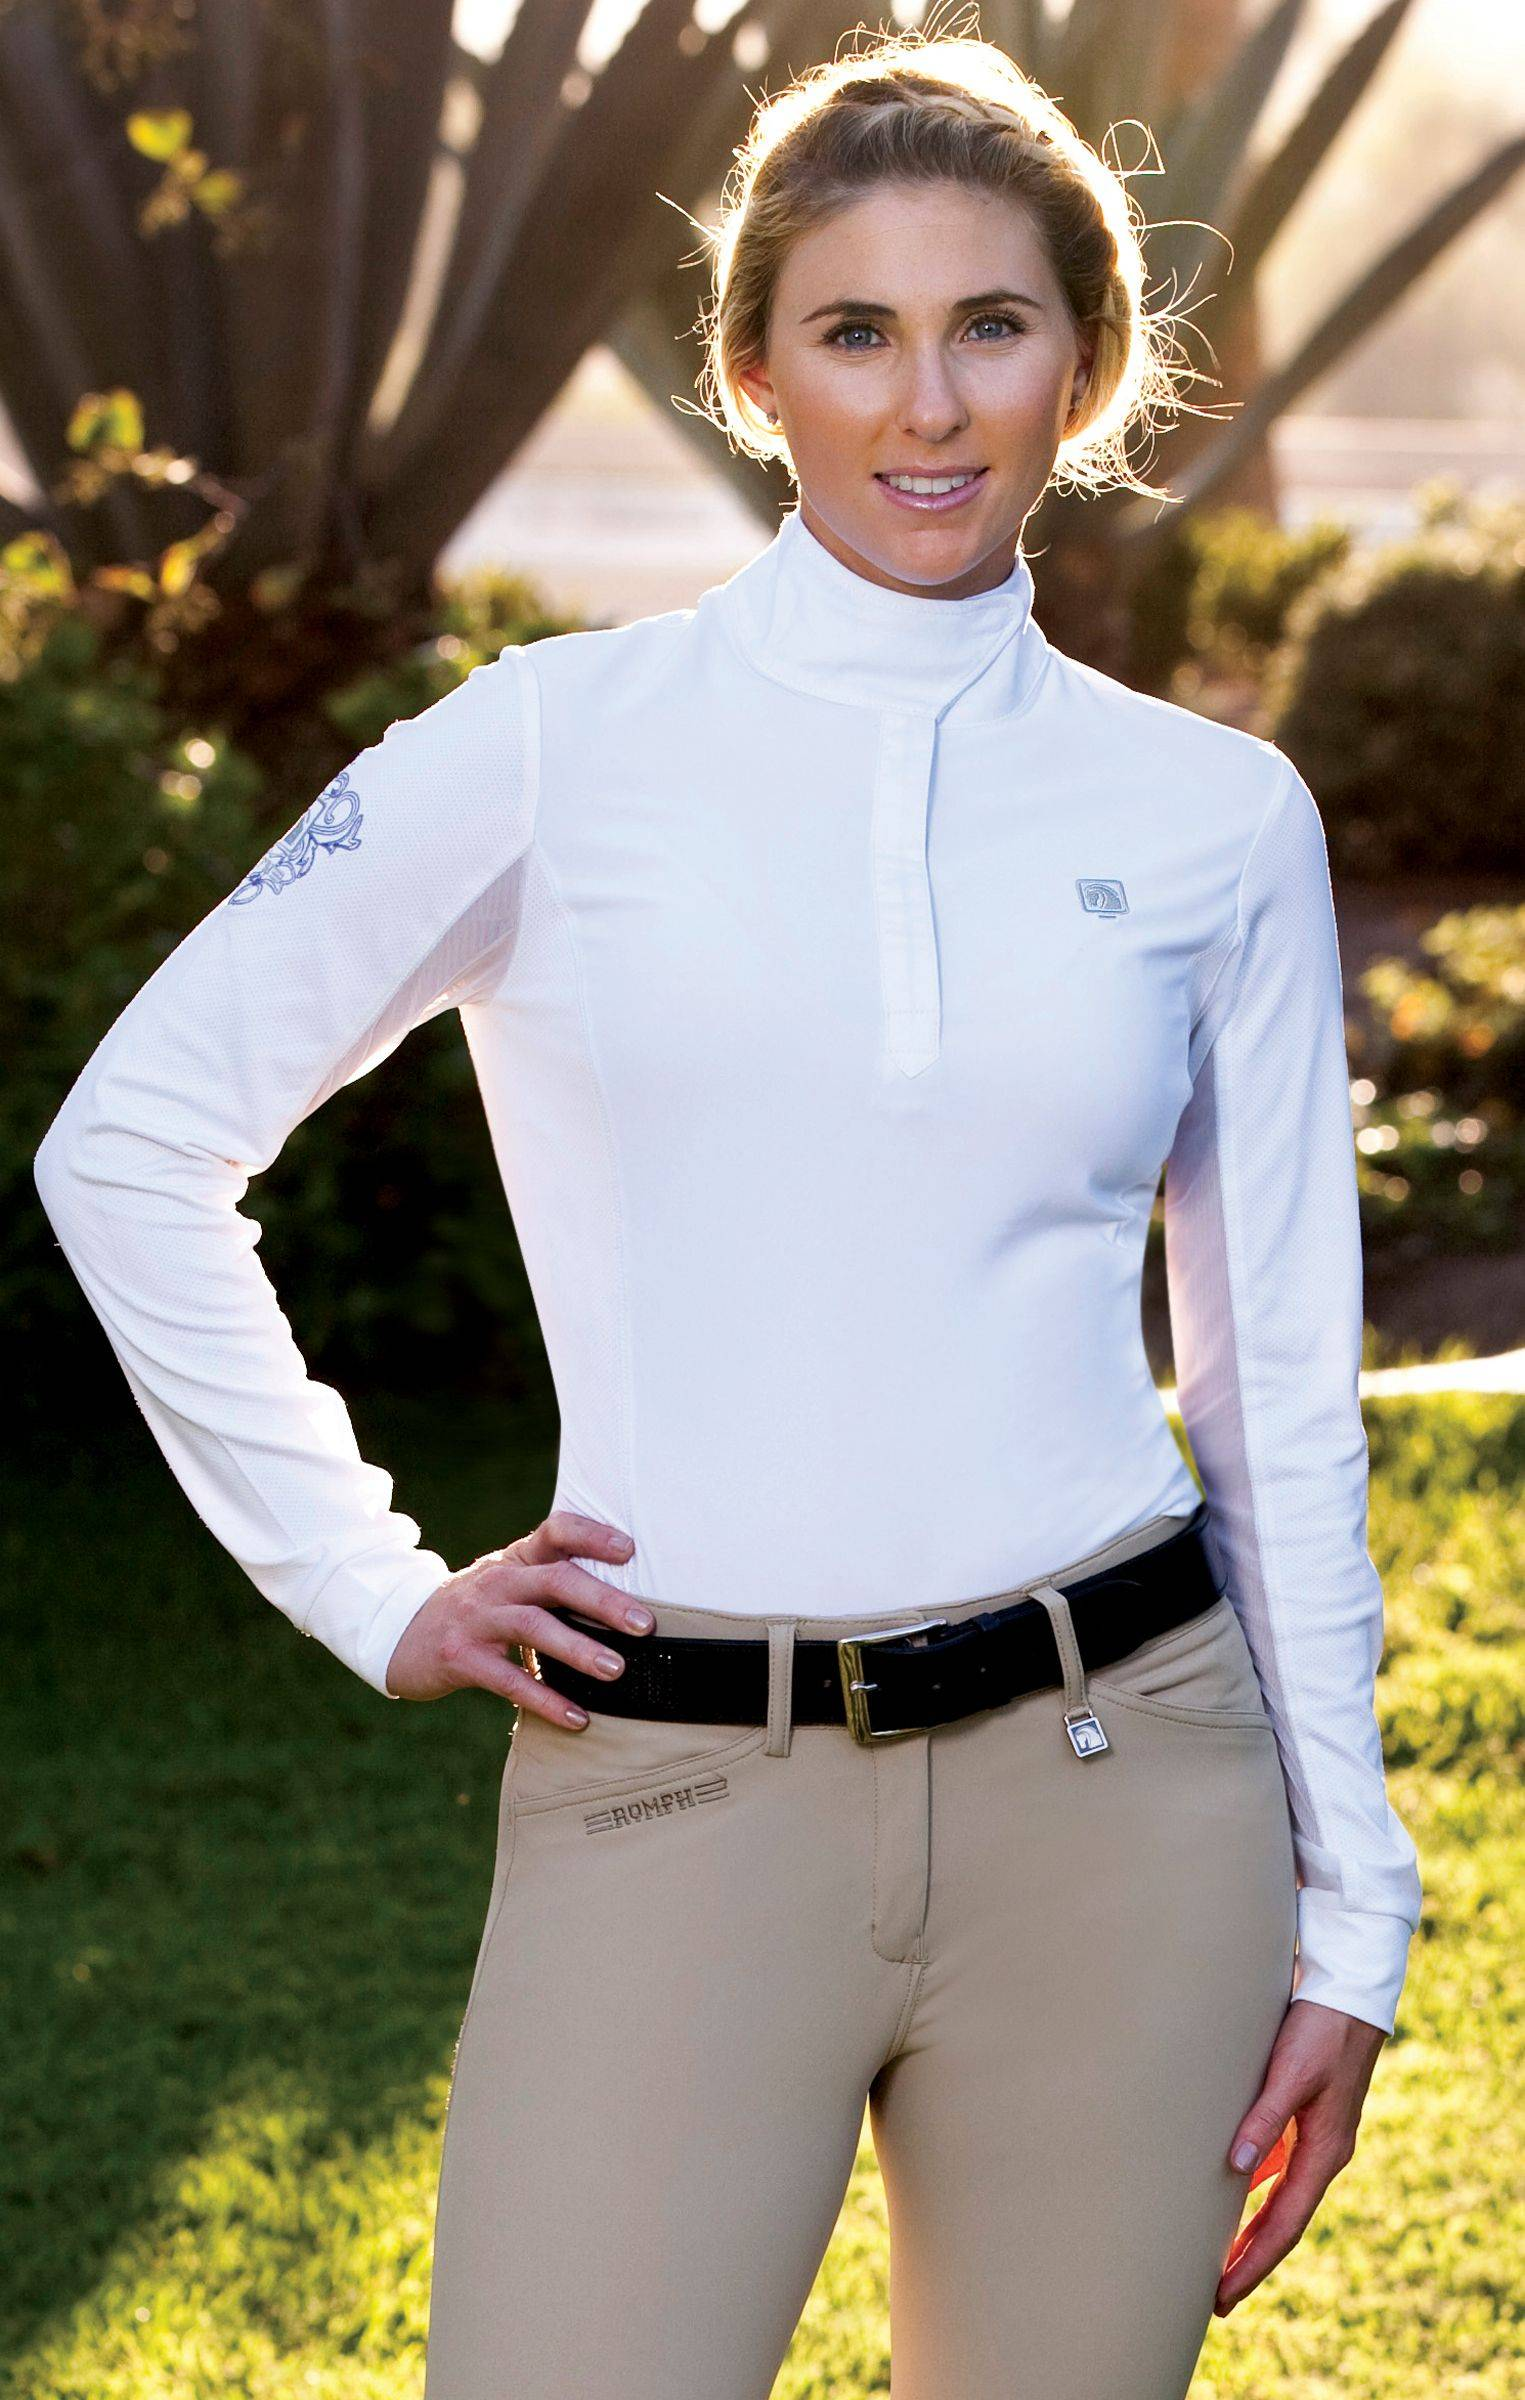 Romfh Competitor Show Shirt - Ladies, Long Sleeve